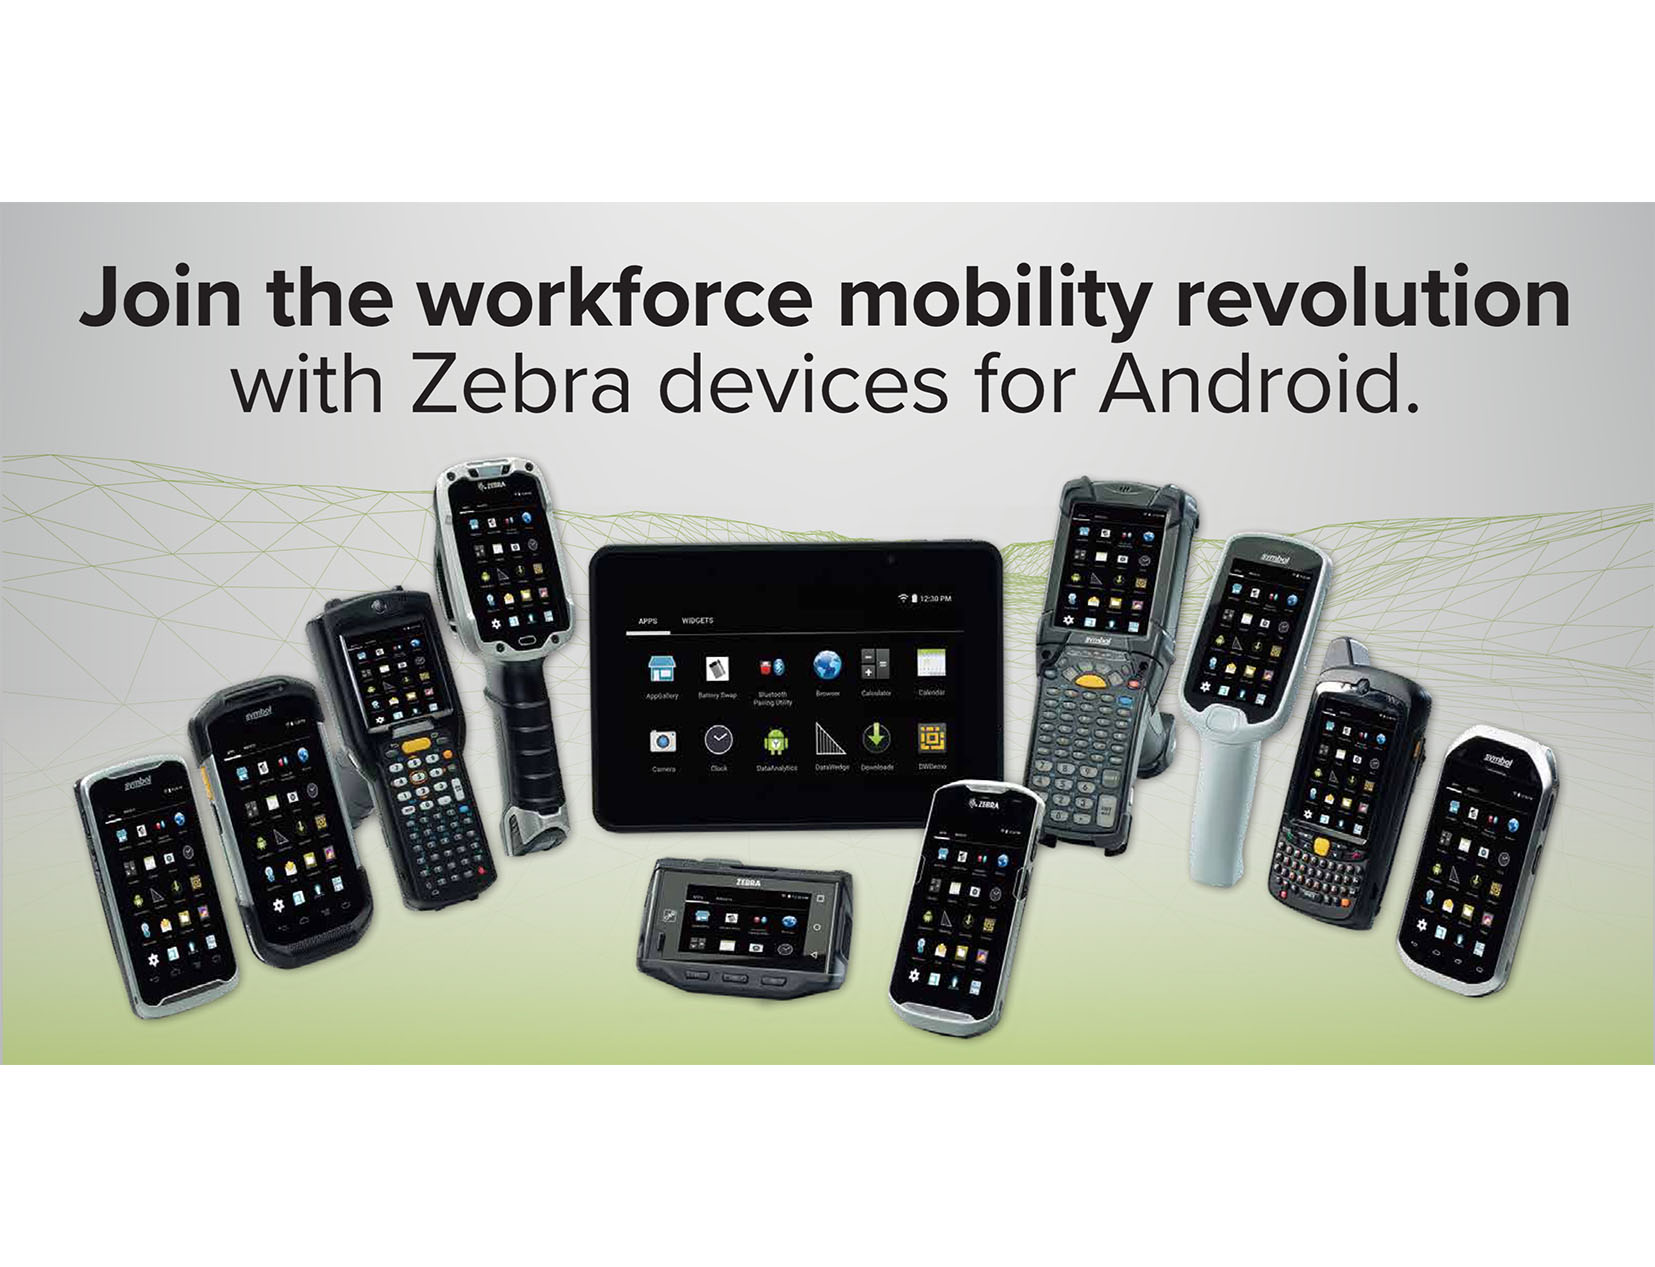 Zebra for Android